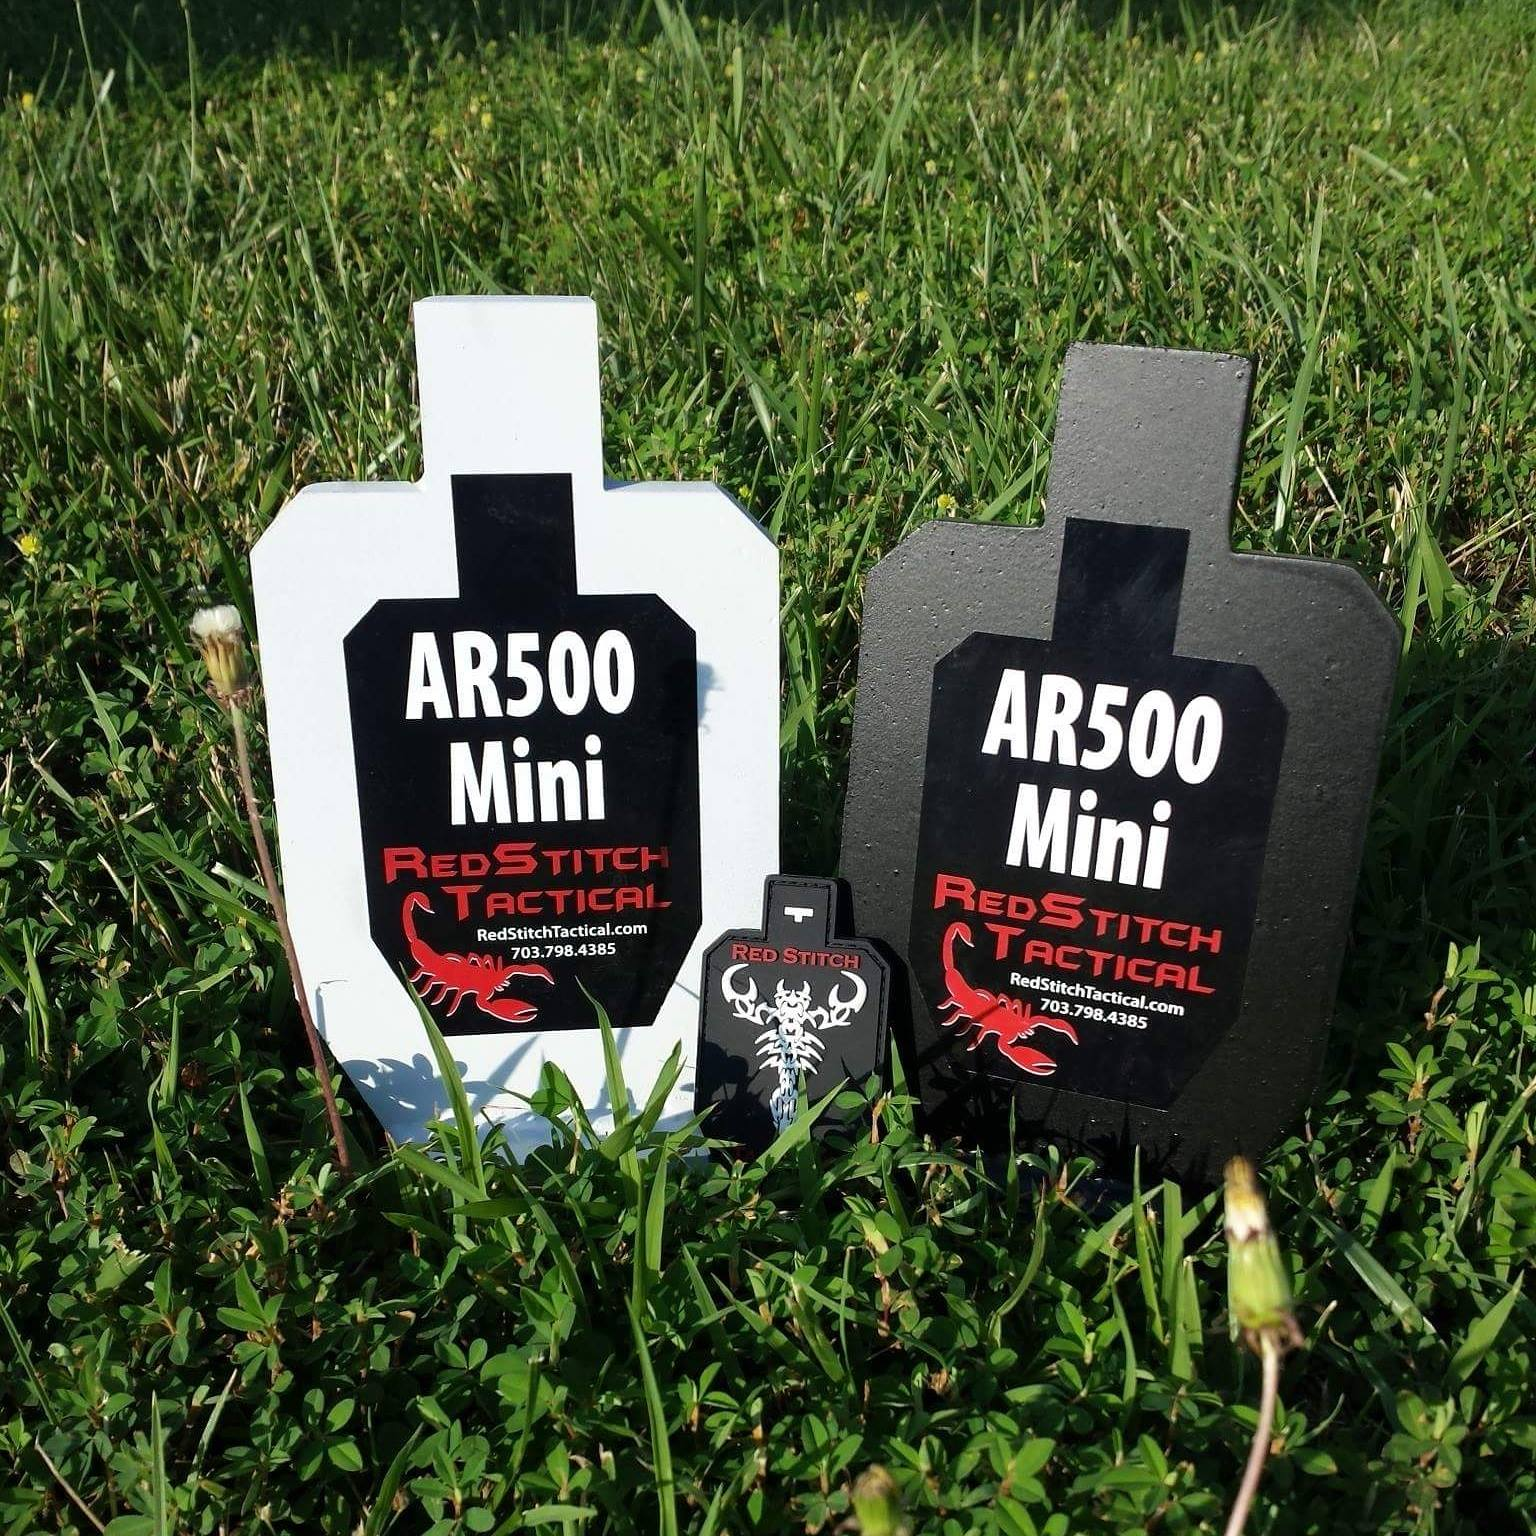 AR550 Target Hitches